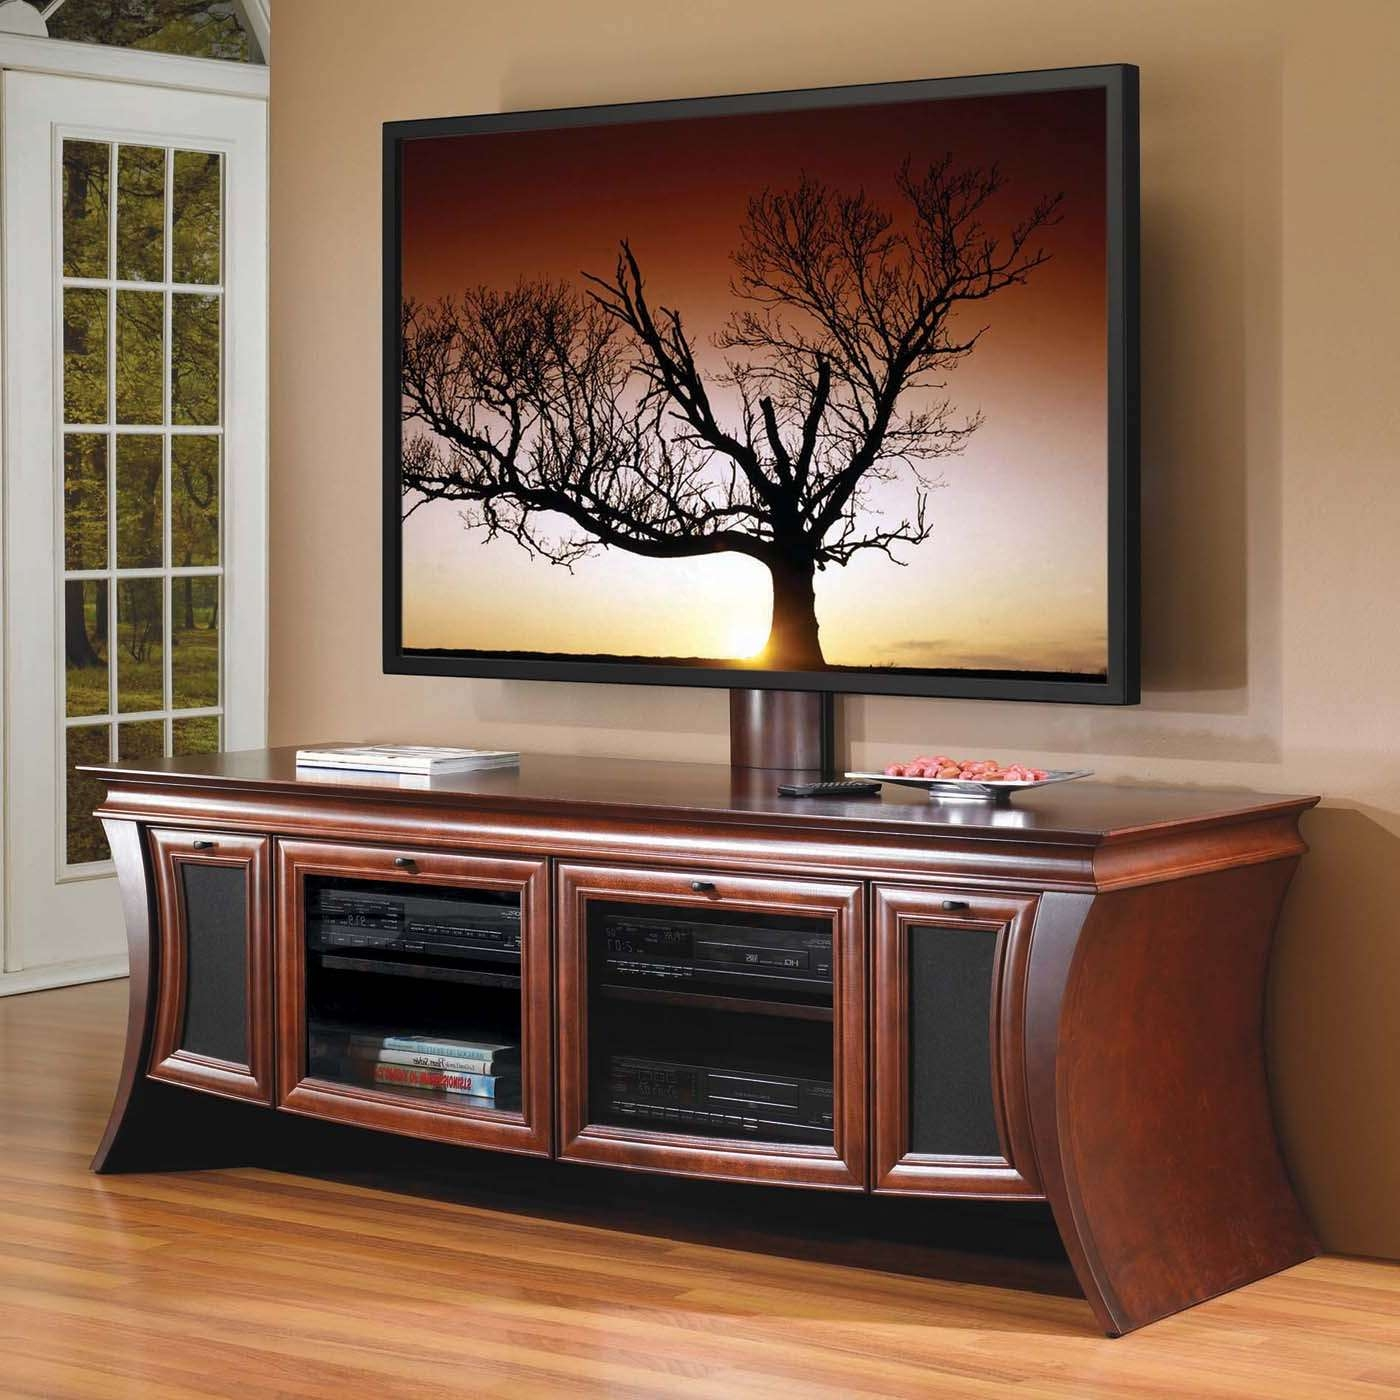 Furnitures Media Stands For Flat Screen Tvs Furniture The Best Throughout Corner Tv Cabinets For Flat Screens With Doors (View 11 of 20)